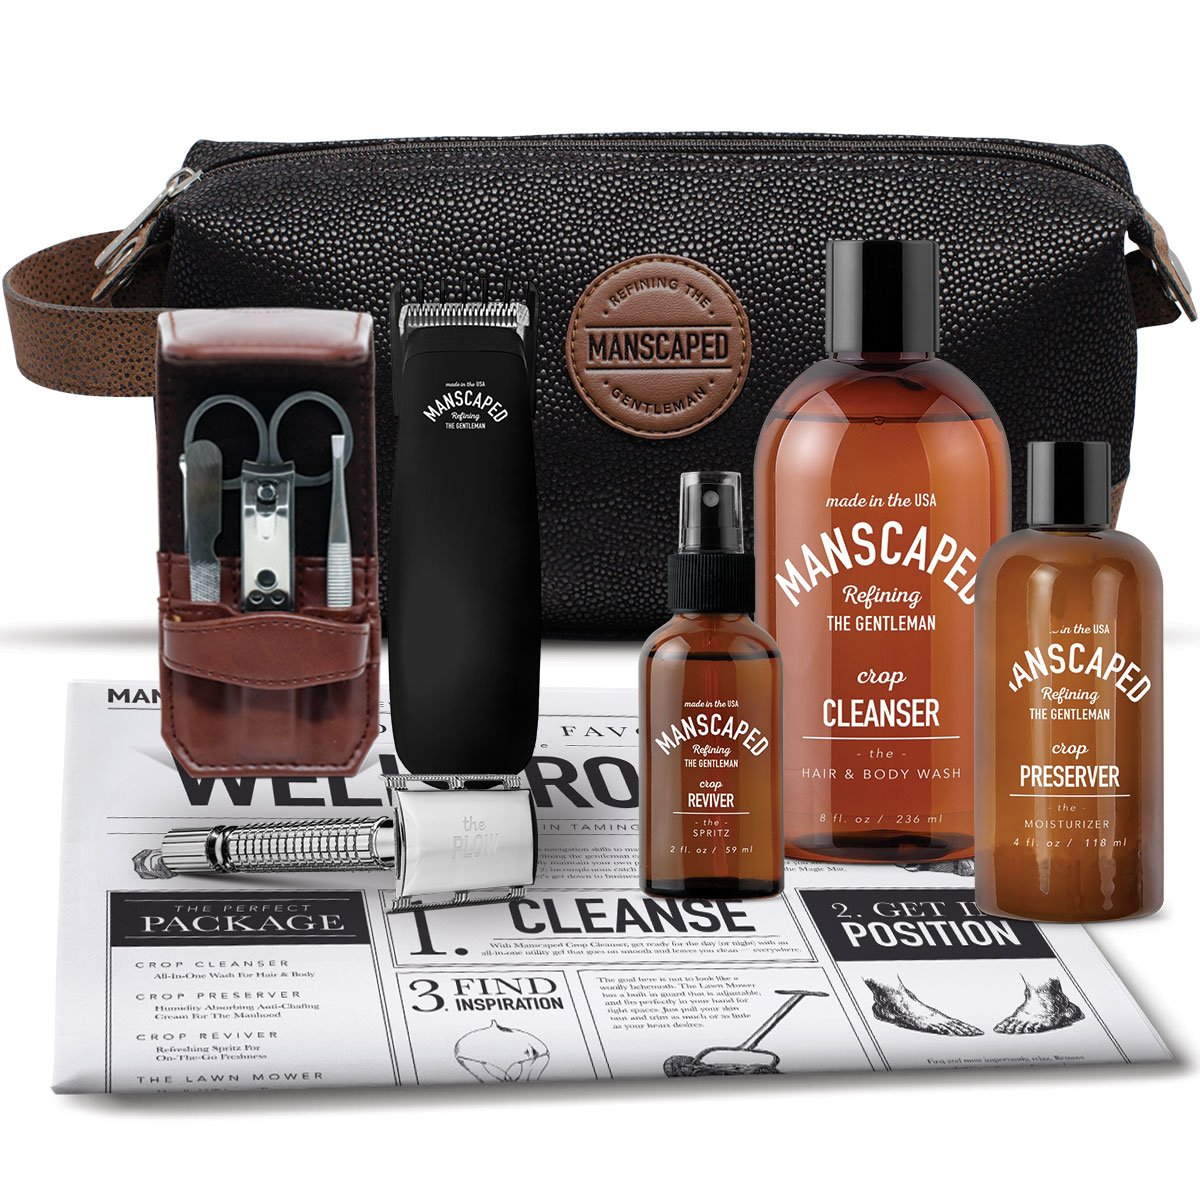 Men's Grooming Kit Includes: Manscaping Trimmer, Ball Deodorant, All-in-one body wash, Performance Spray-on-body Toner, Double Edged Straight Razor, five piece Nail Kit, Luxury toilet bag, shaving mat